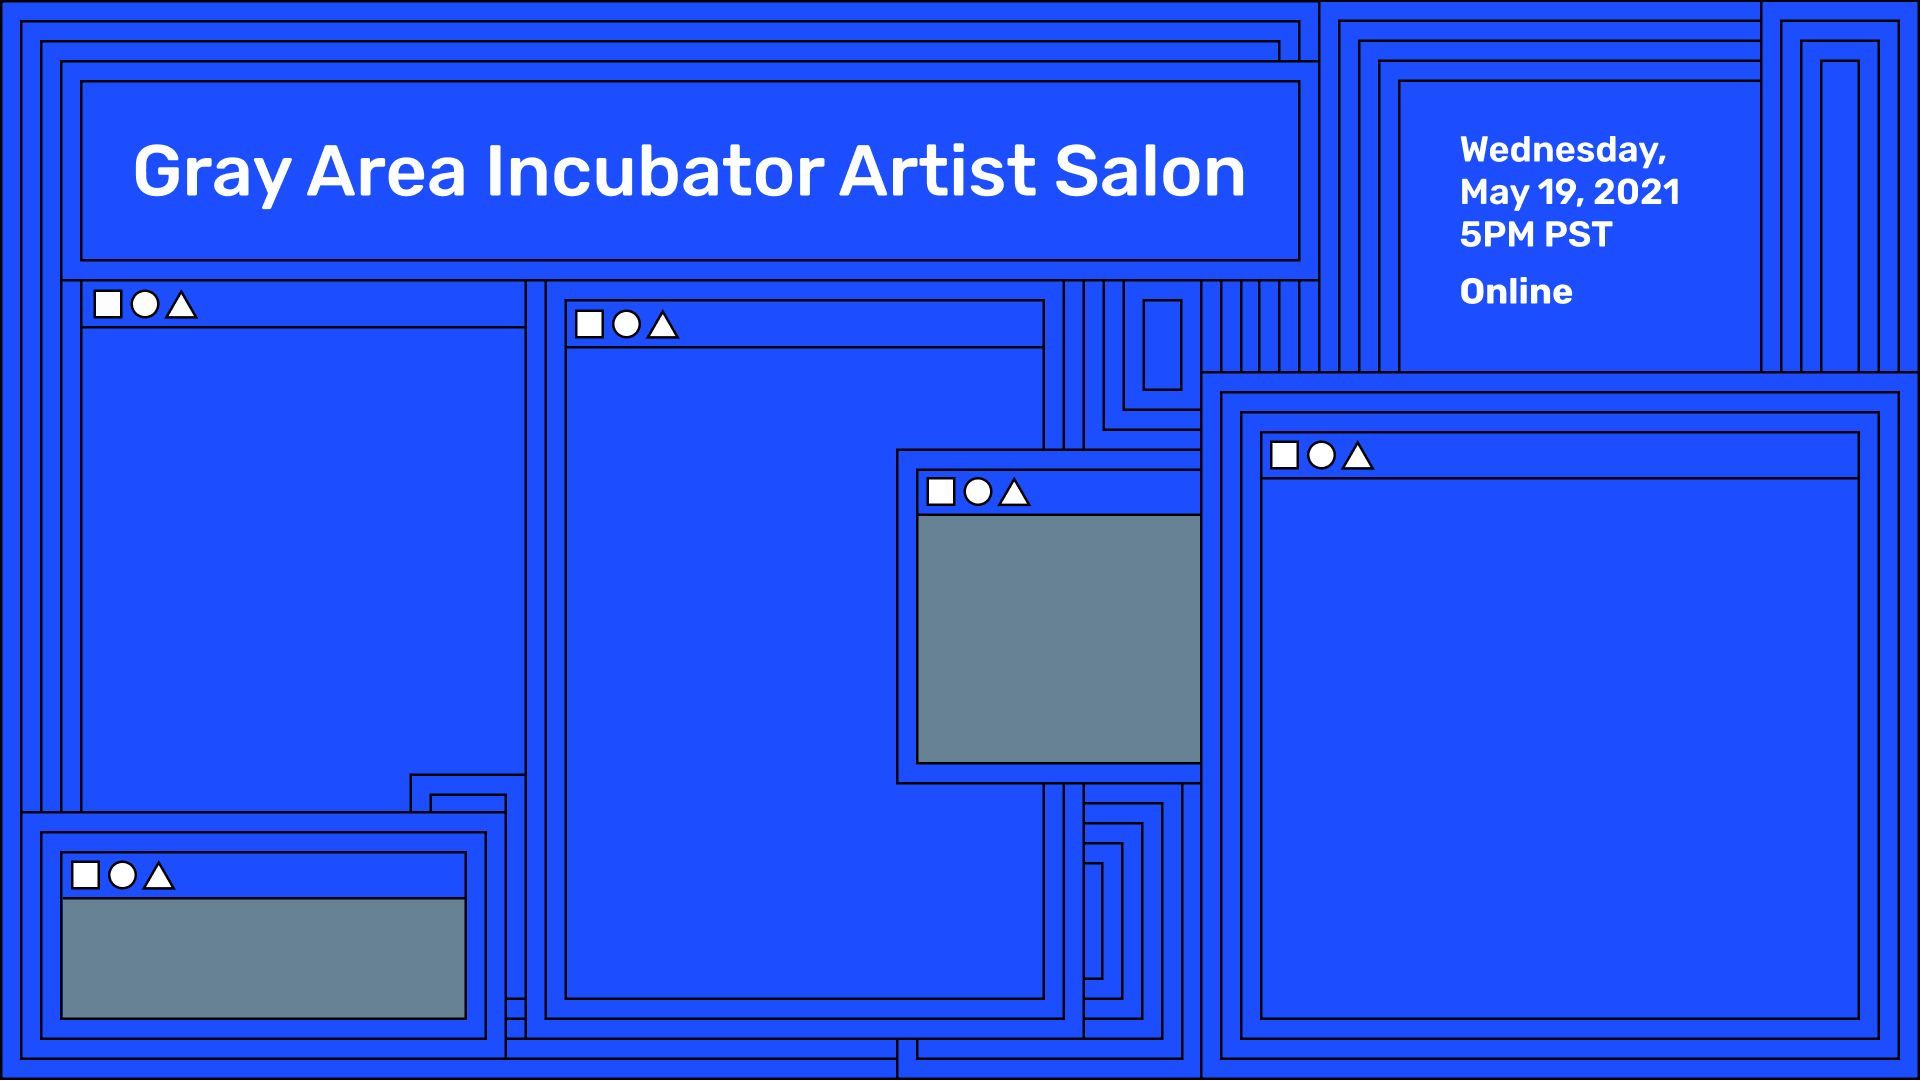 an illustration of radiating browser windows, with information about the Gray Area Incubator Artist Salon